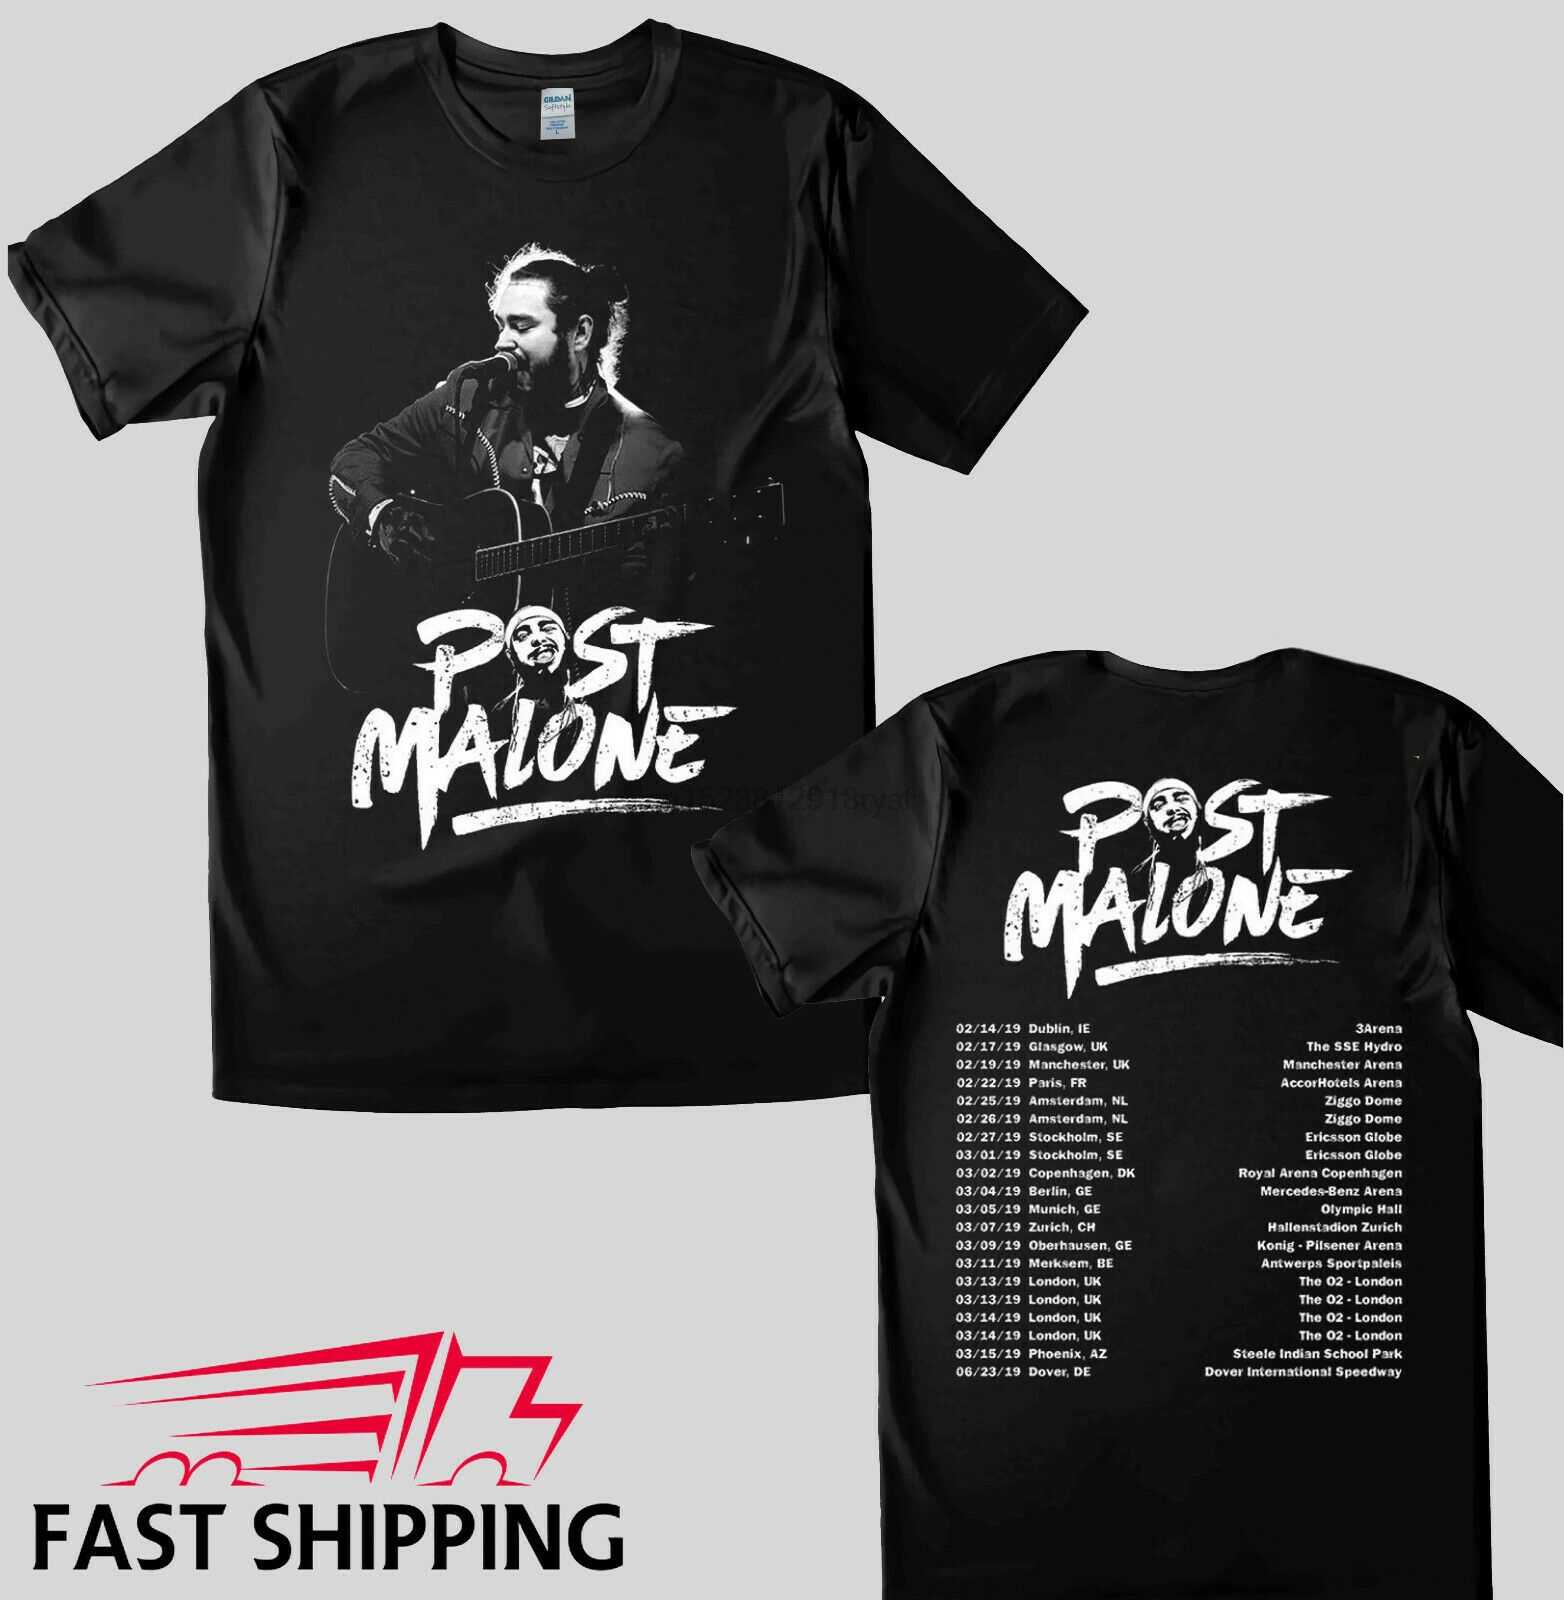 Post Malone Tour Dates 2019 t-shirt couleur noire 100% coton meilleur article